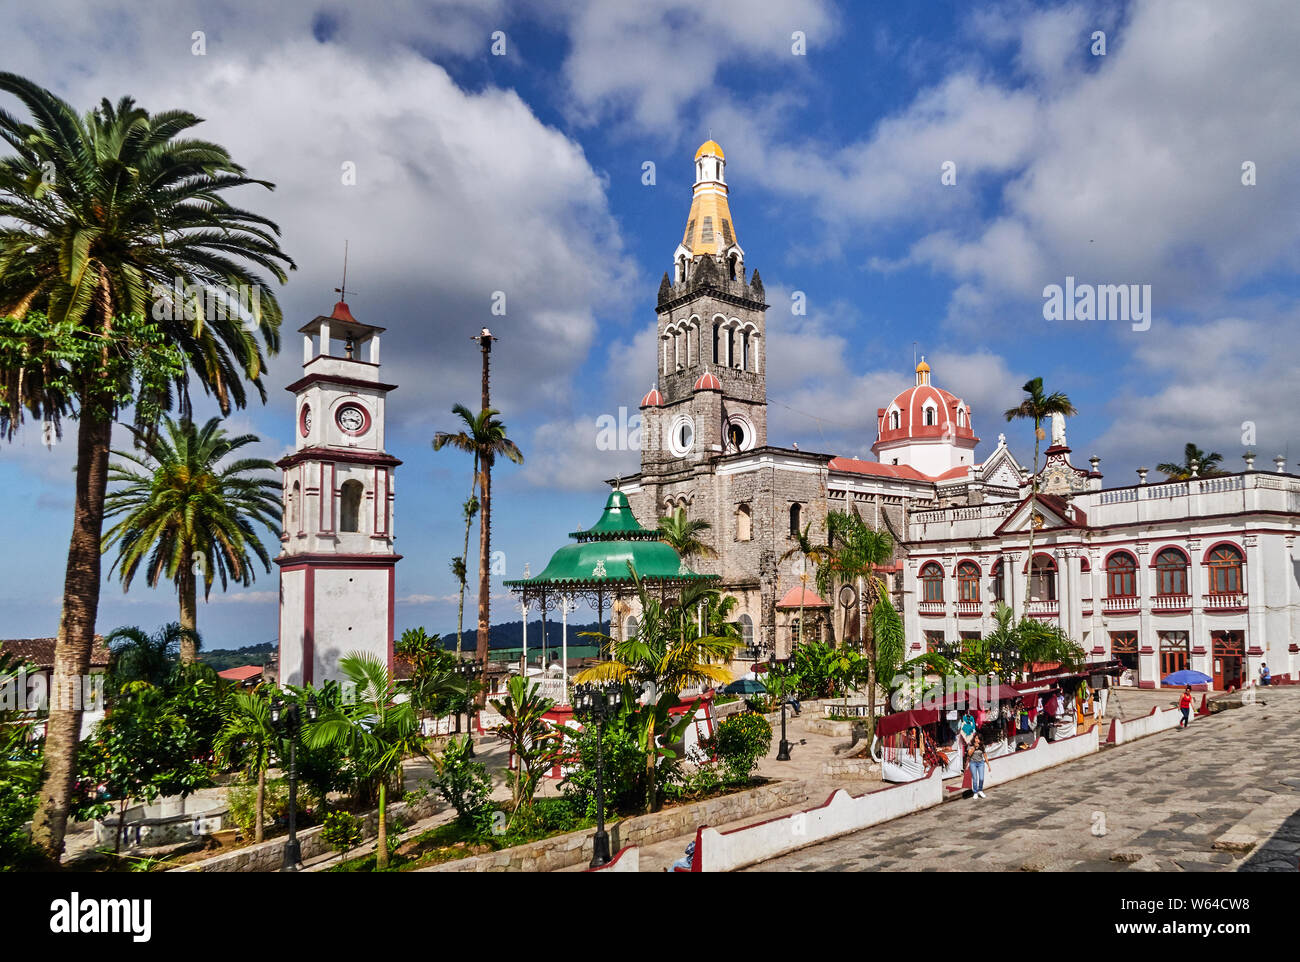 Progreso Stock Photos & Progreso Stock Images - Alamy